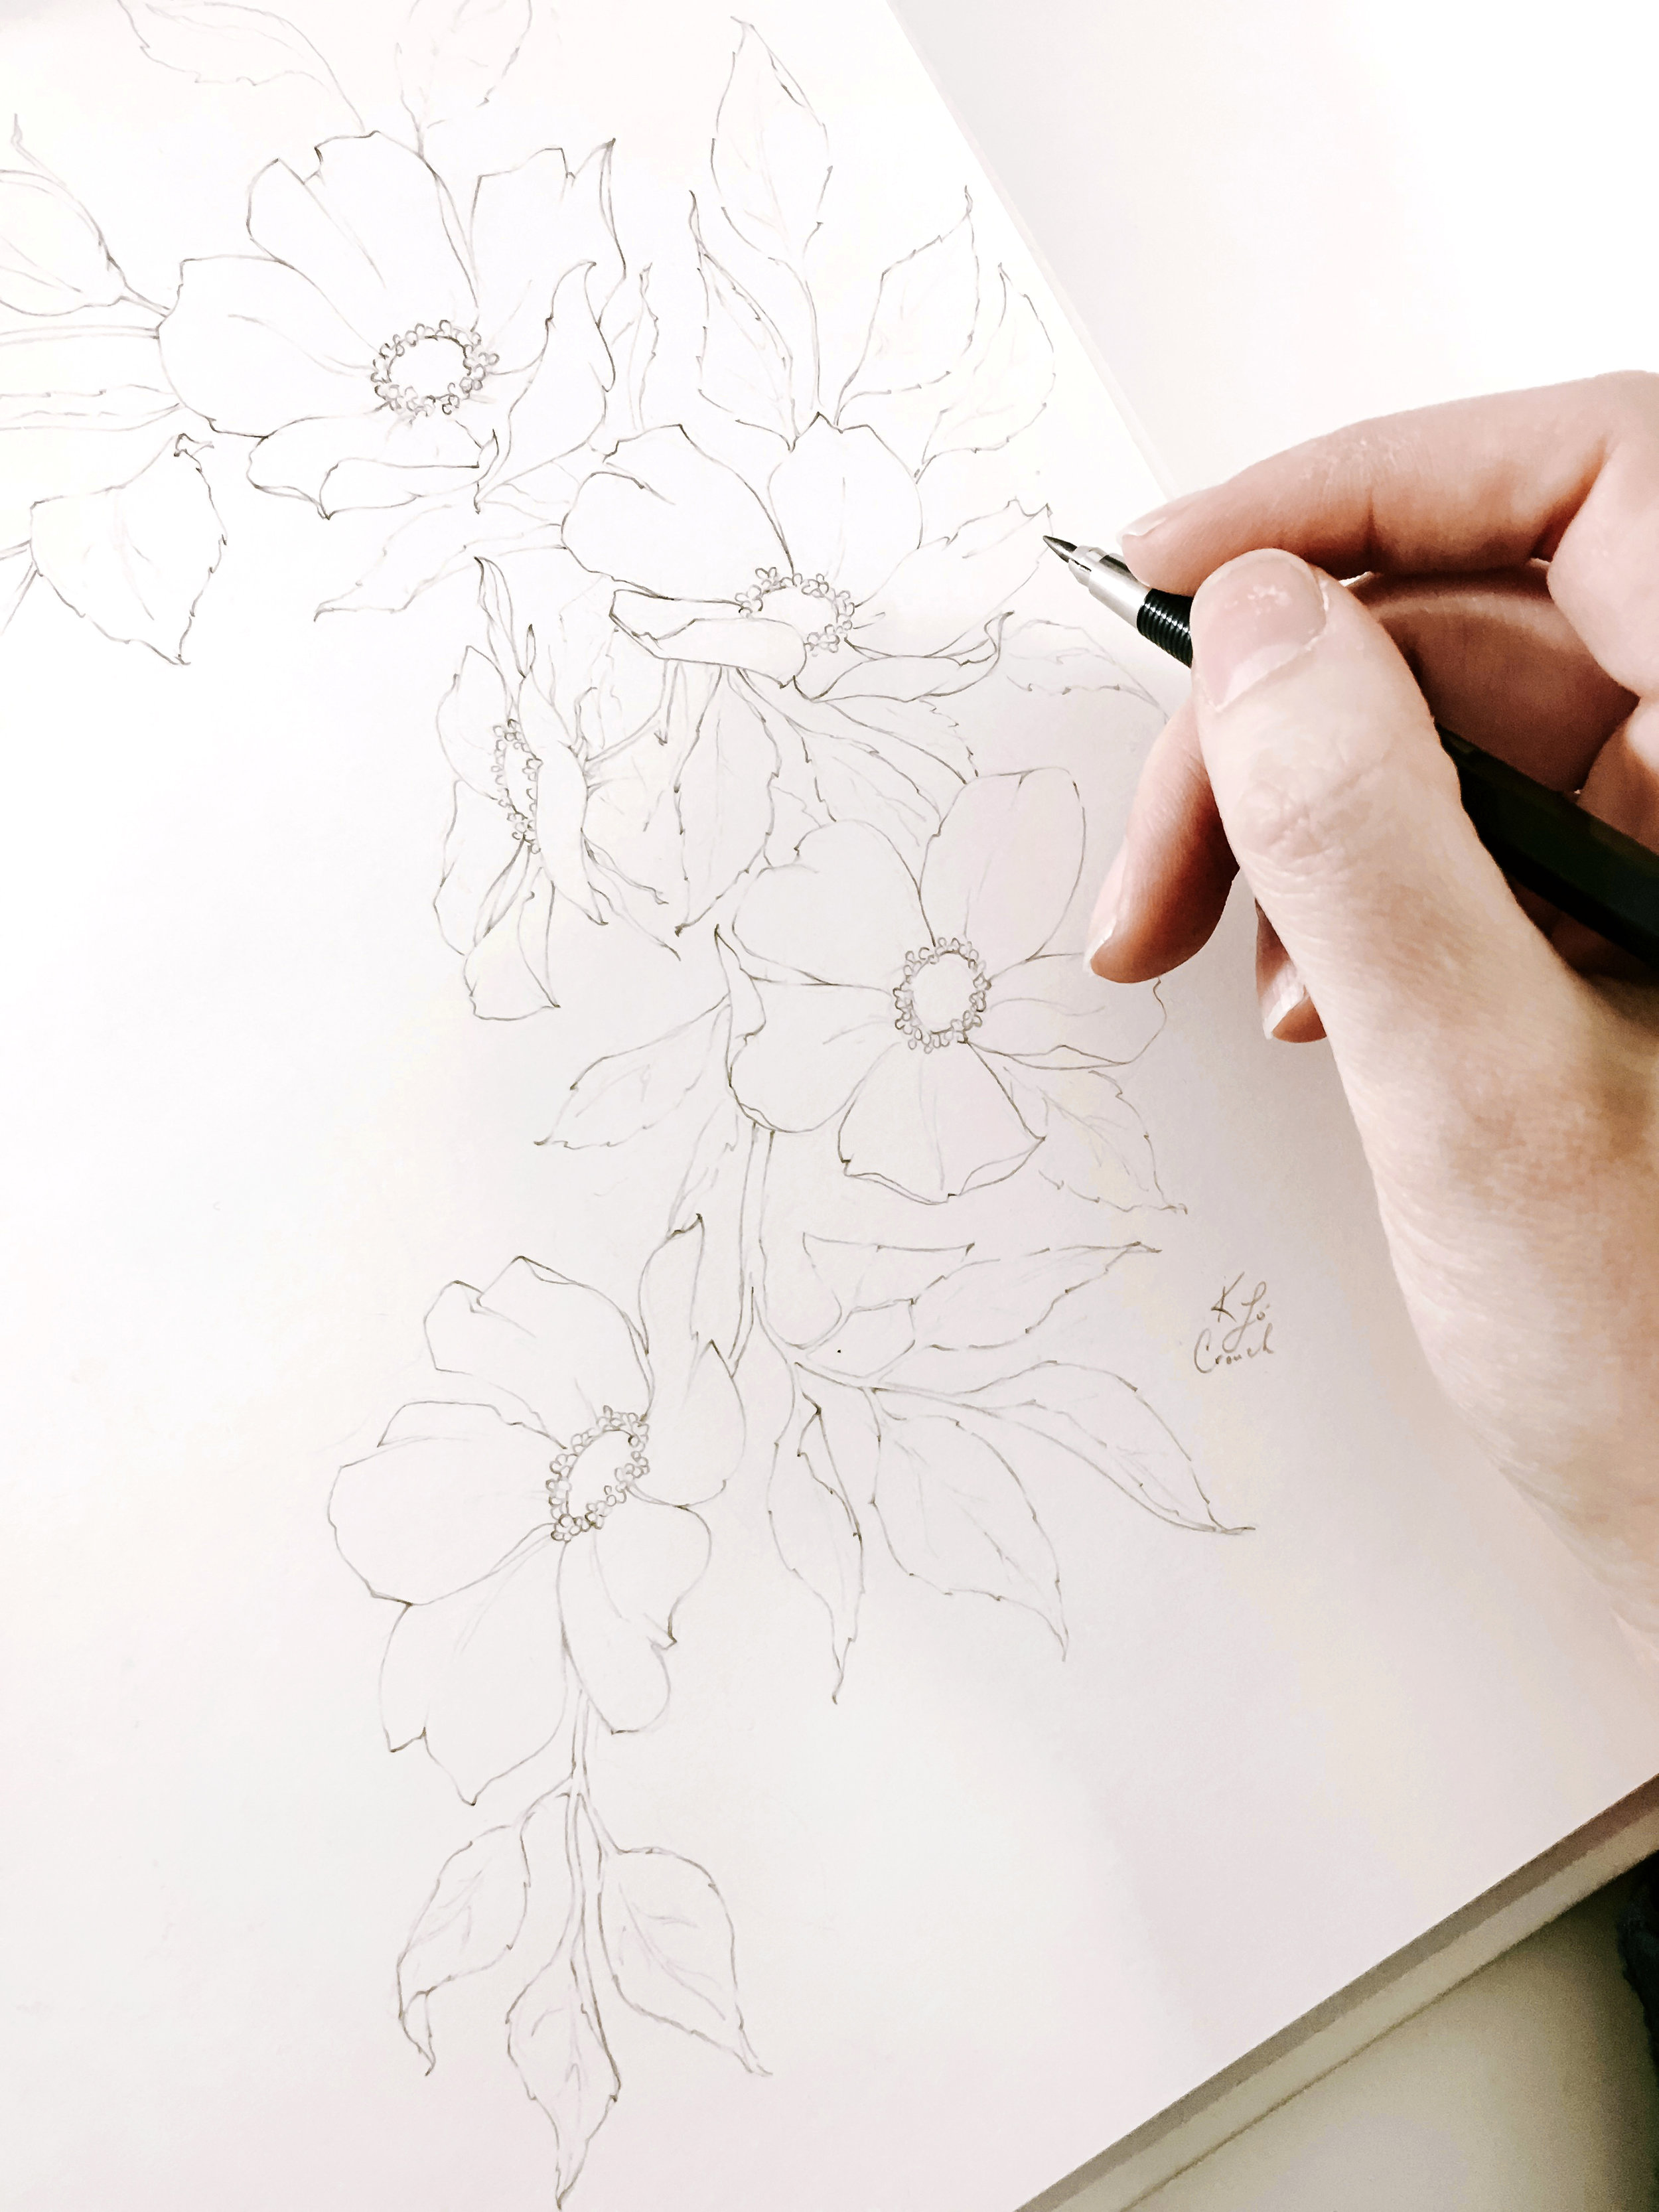 How to draw realistic florals! I'm going to teach you how to draw realistic flowers by sharing 5 of my favorite secrets with you through video tutorials and a supportive community! #floraldrawingchallenge #howtodrawflowers #drawingtutorials